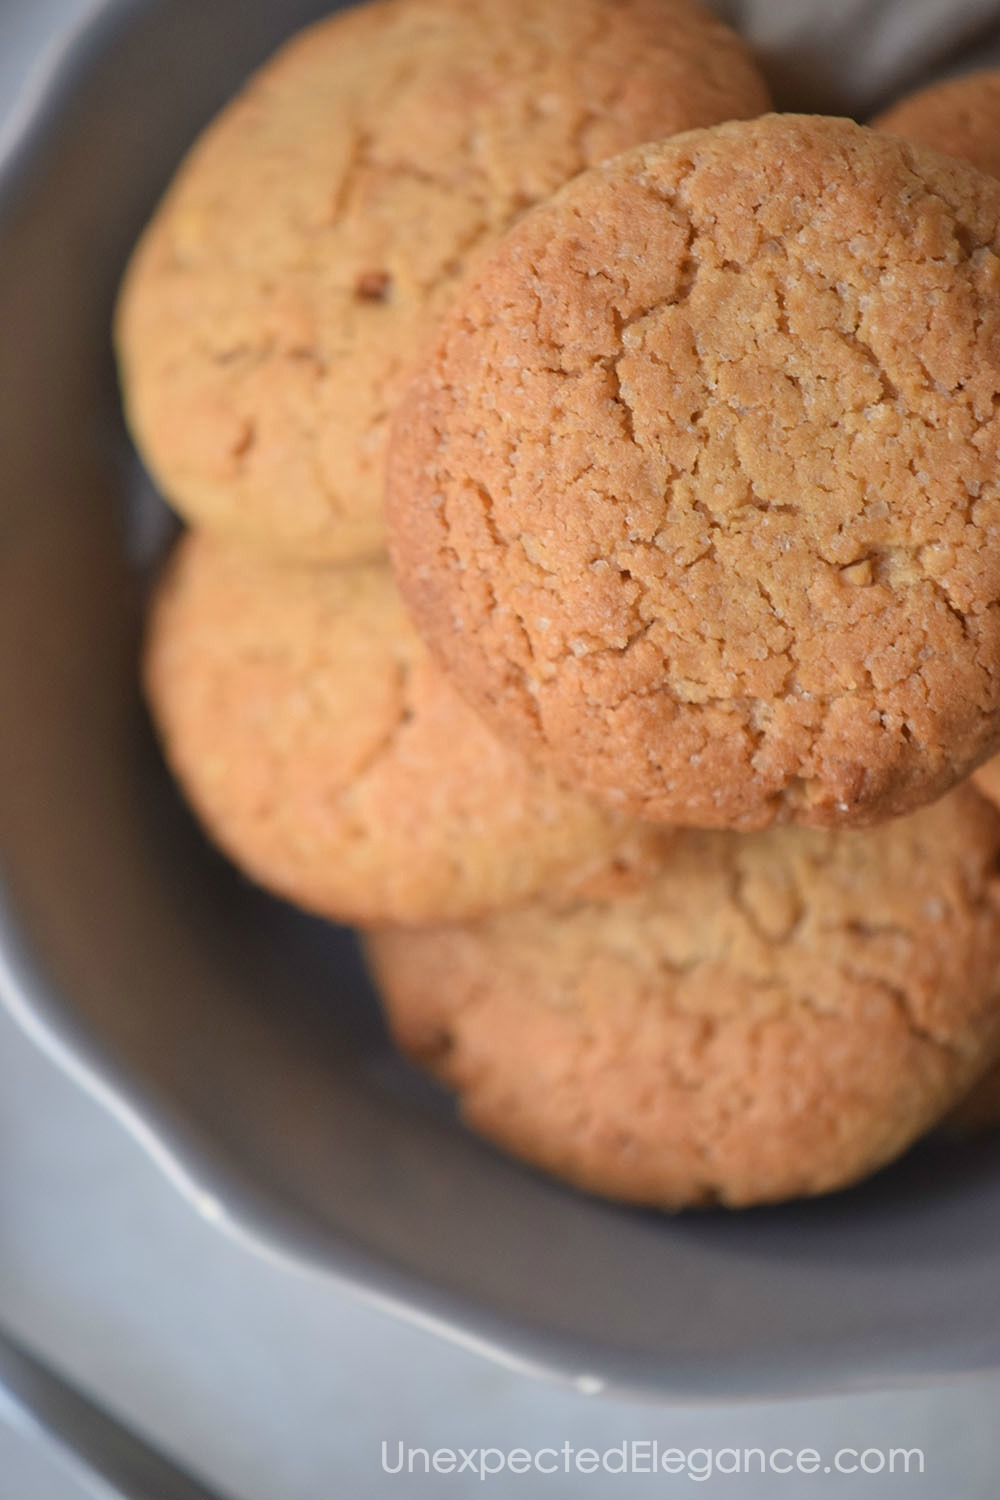 This recipe makes perfect SOFT peanut butter cookies!